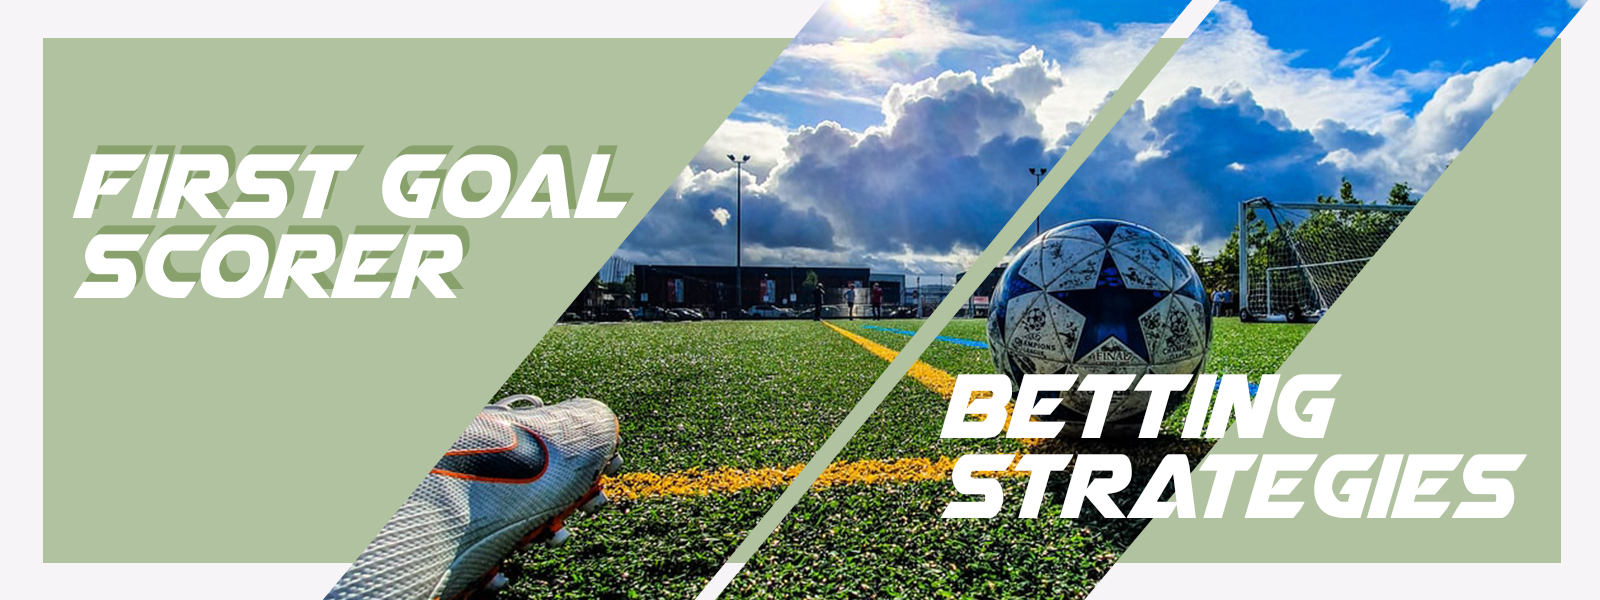 First Goal Scorer Soccer Betting Strategies